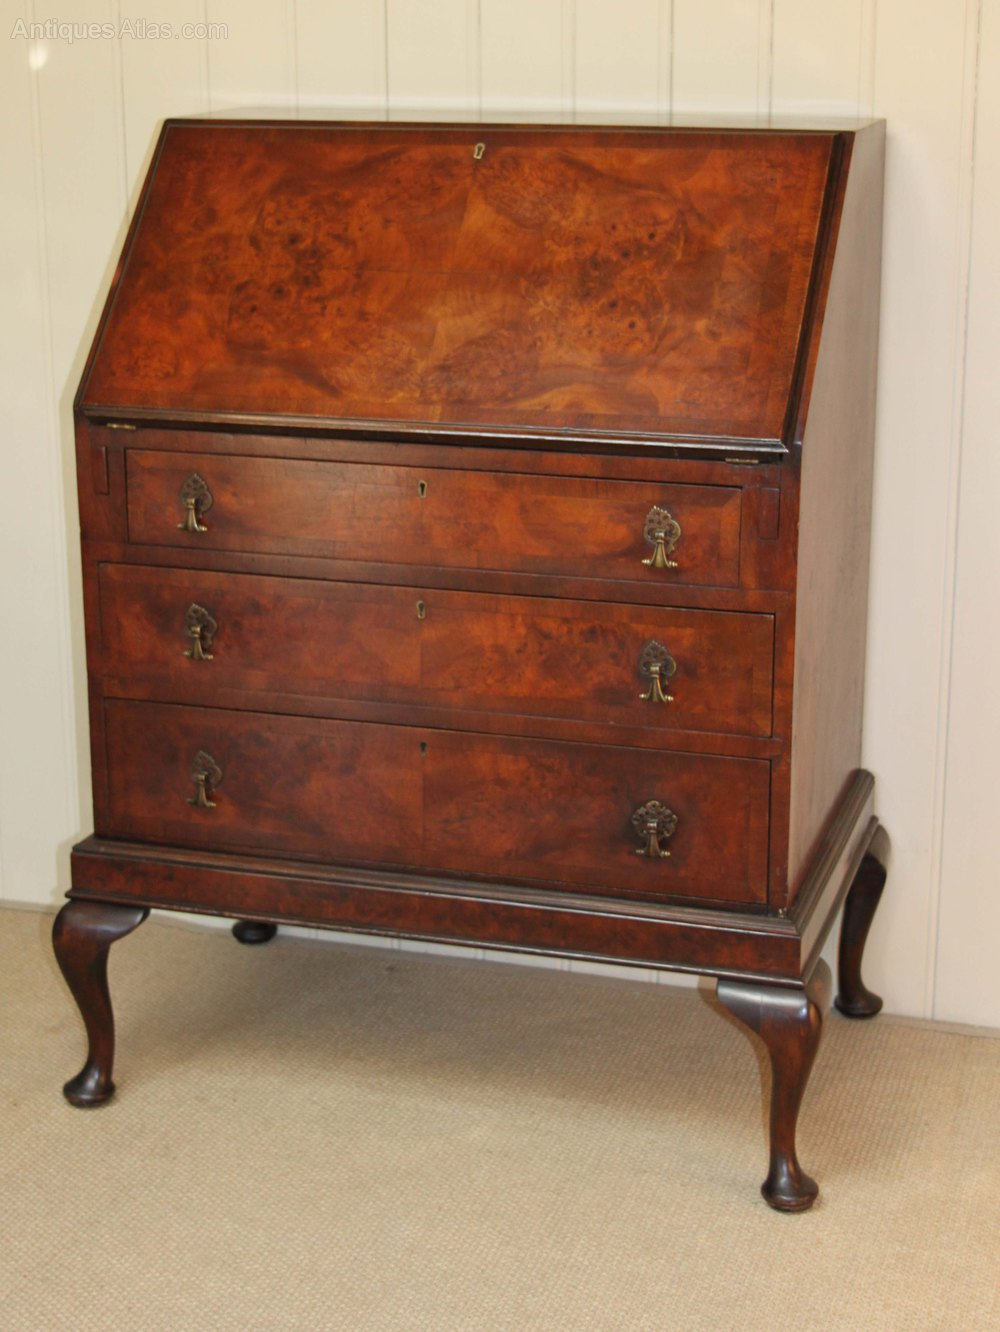 Queen anne style walnut bureau antiques atlas for Queen anne style